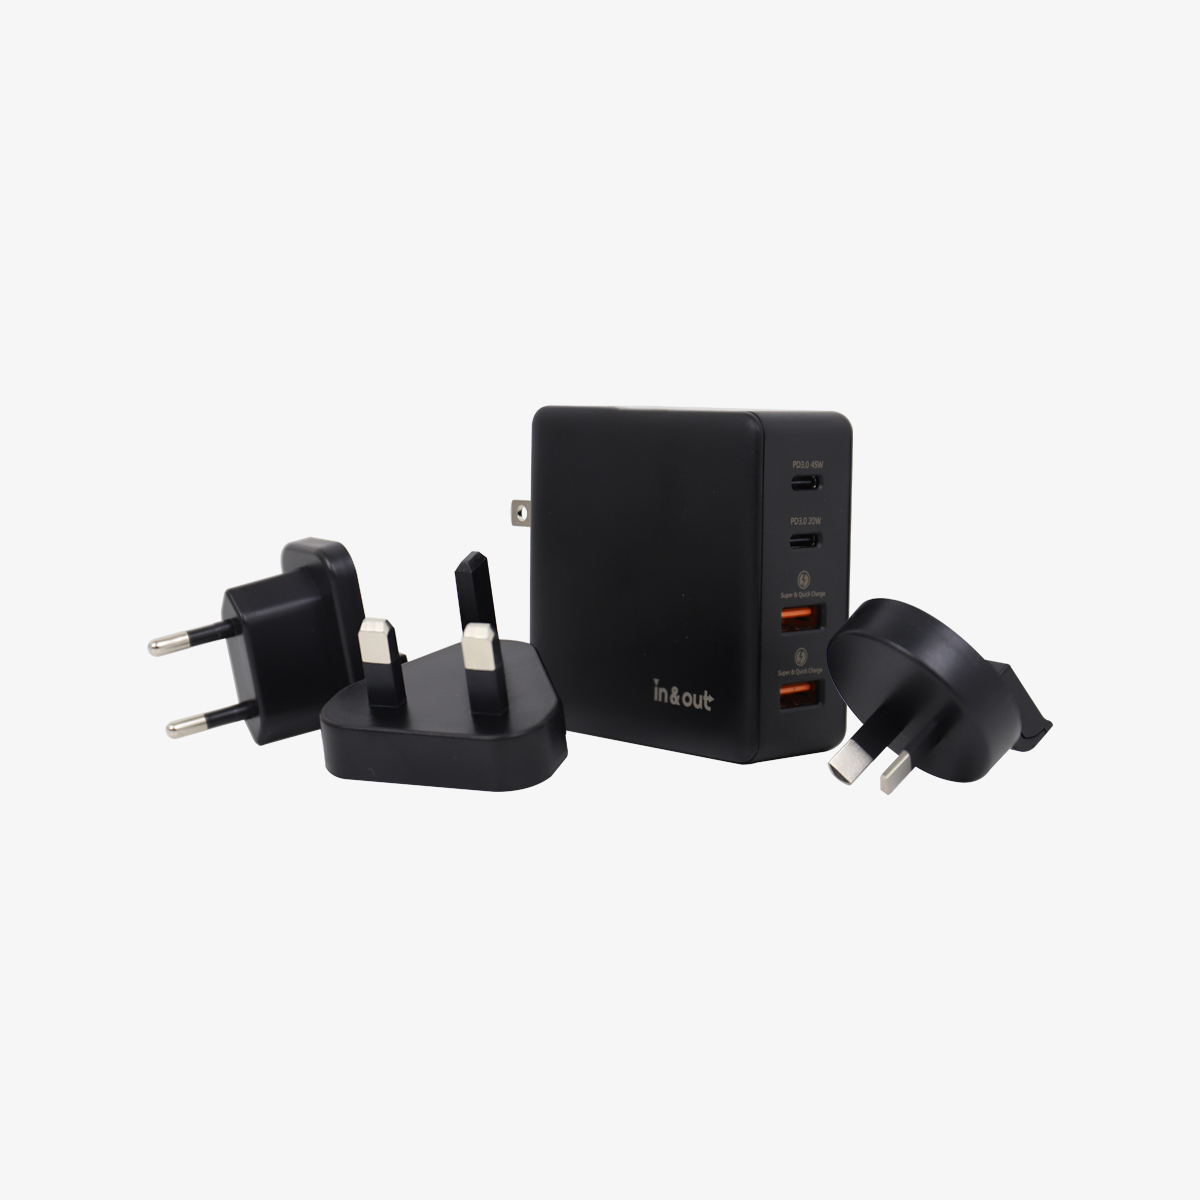 in&out  SmartUniversal Chargerwith 3 plug